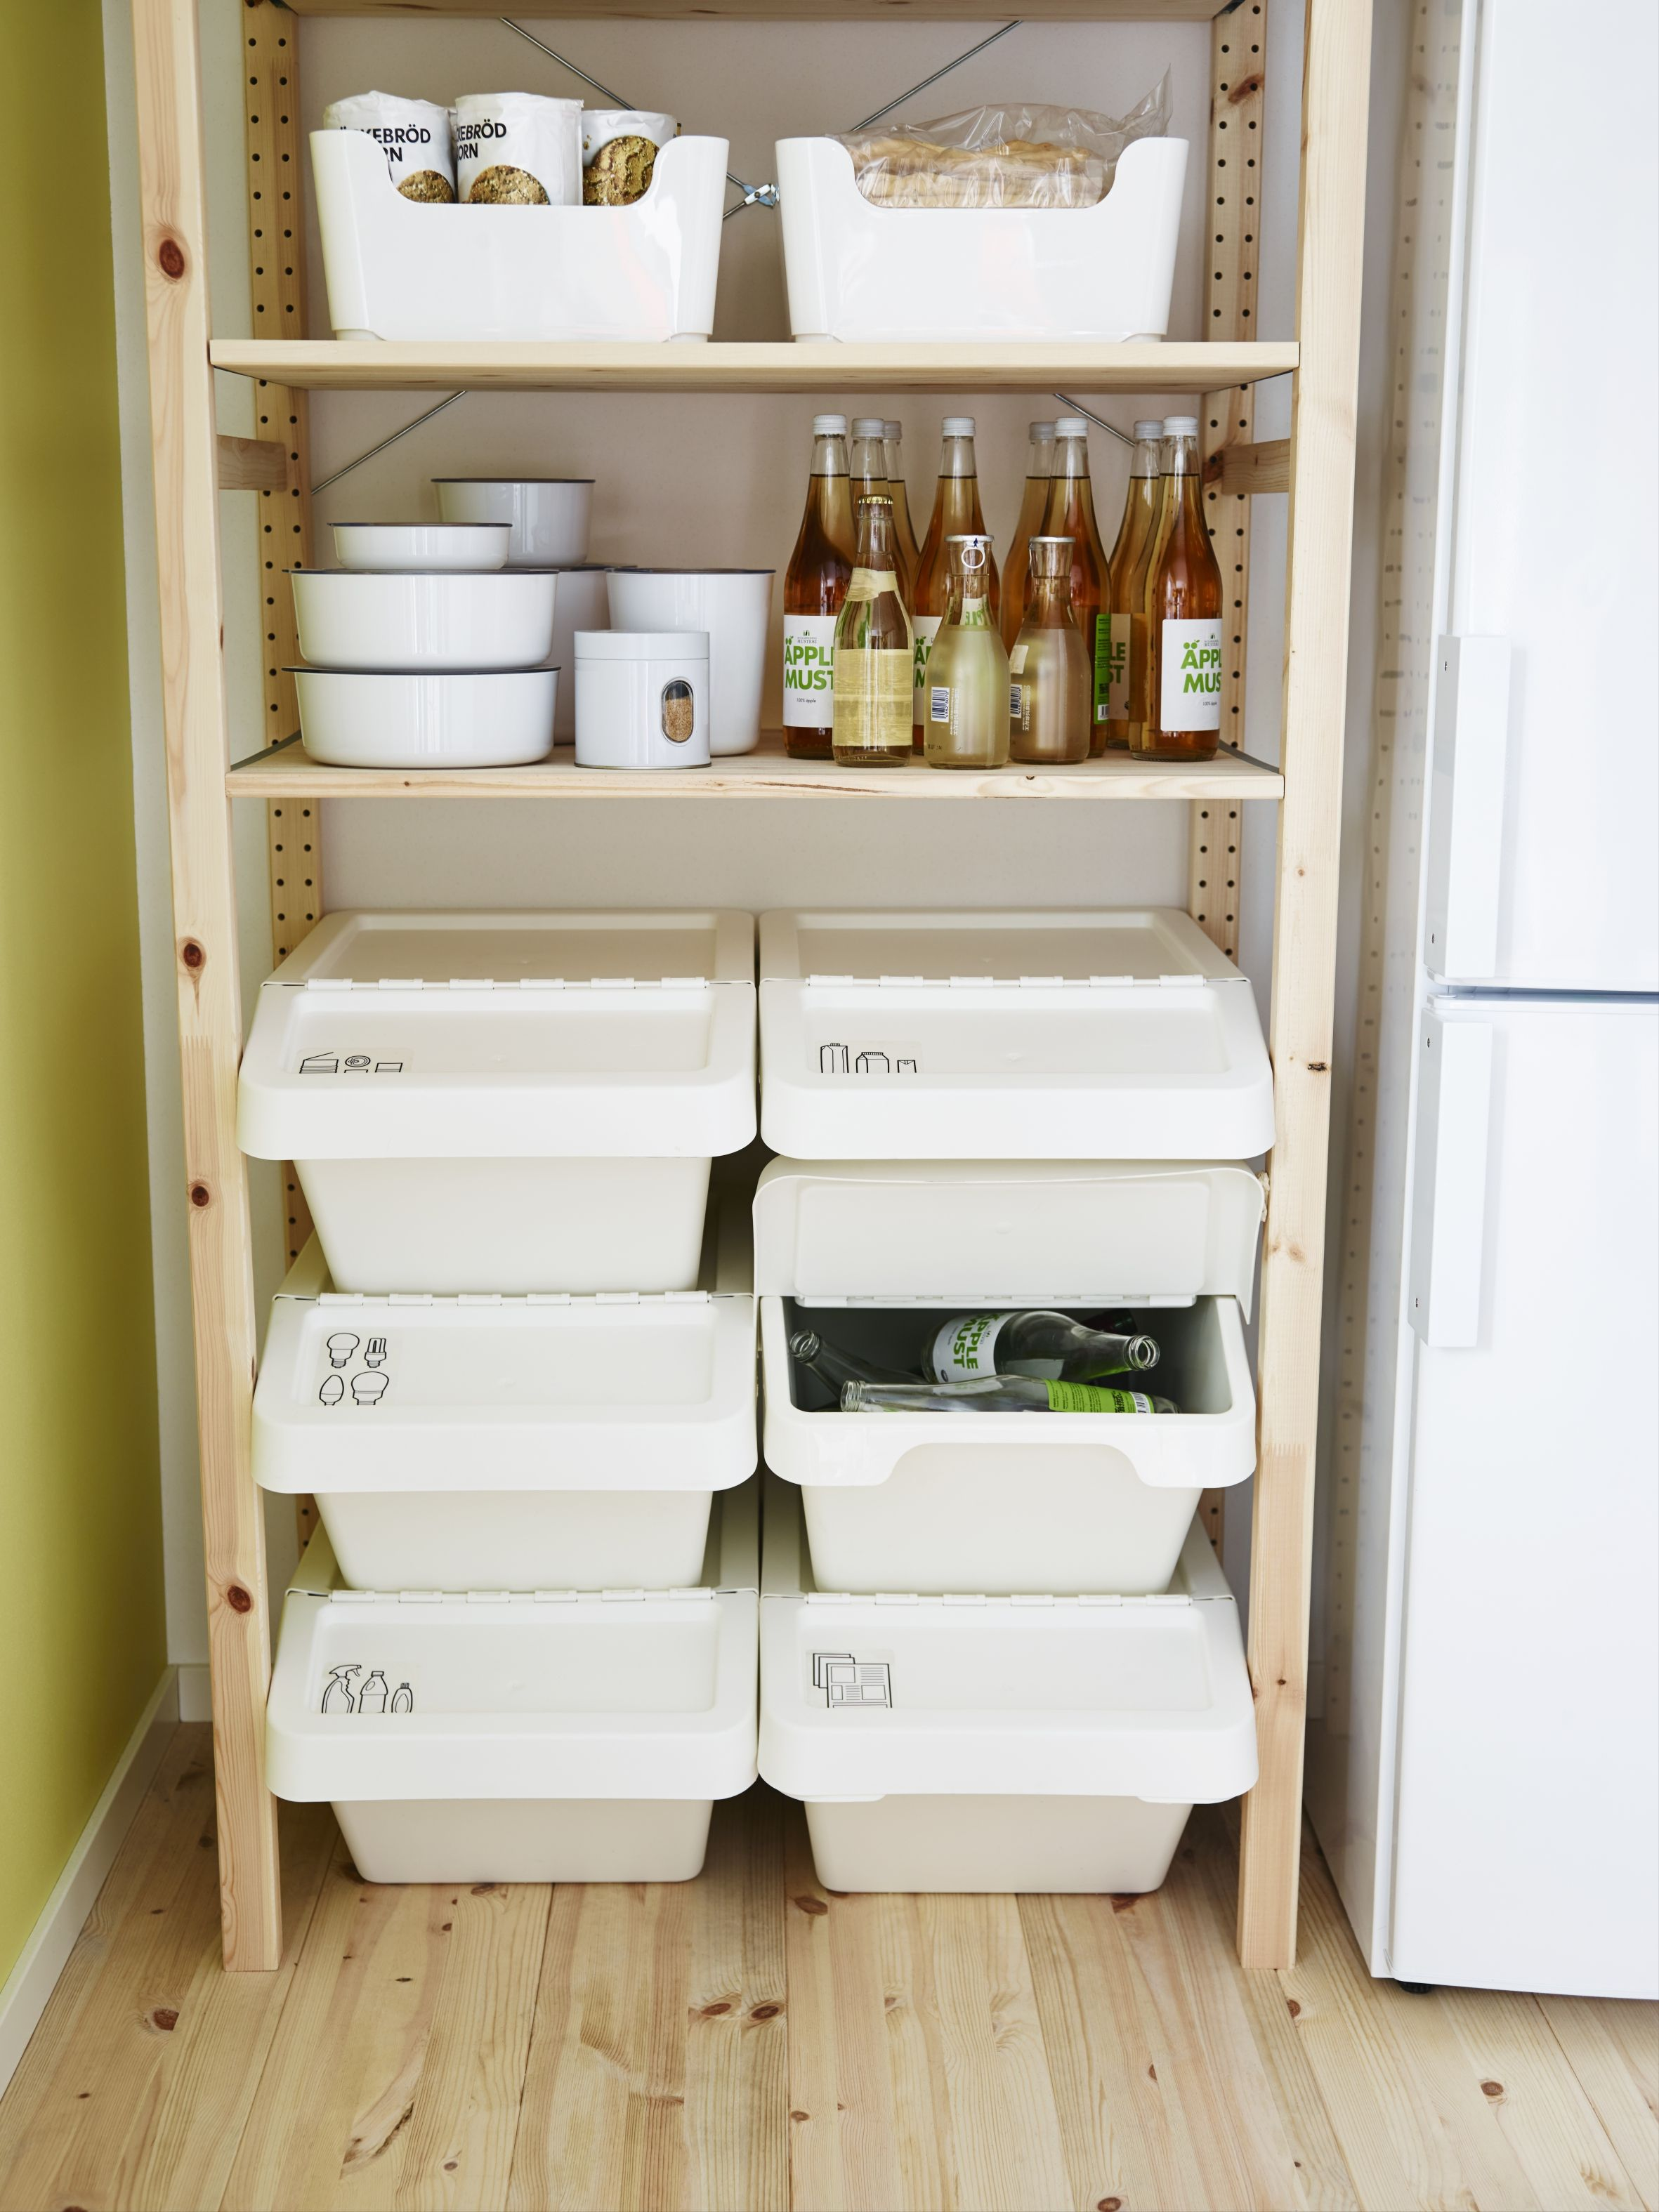 Praktisch! | HOME | Pinterest | Pantry, Shelves and DIY storage